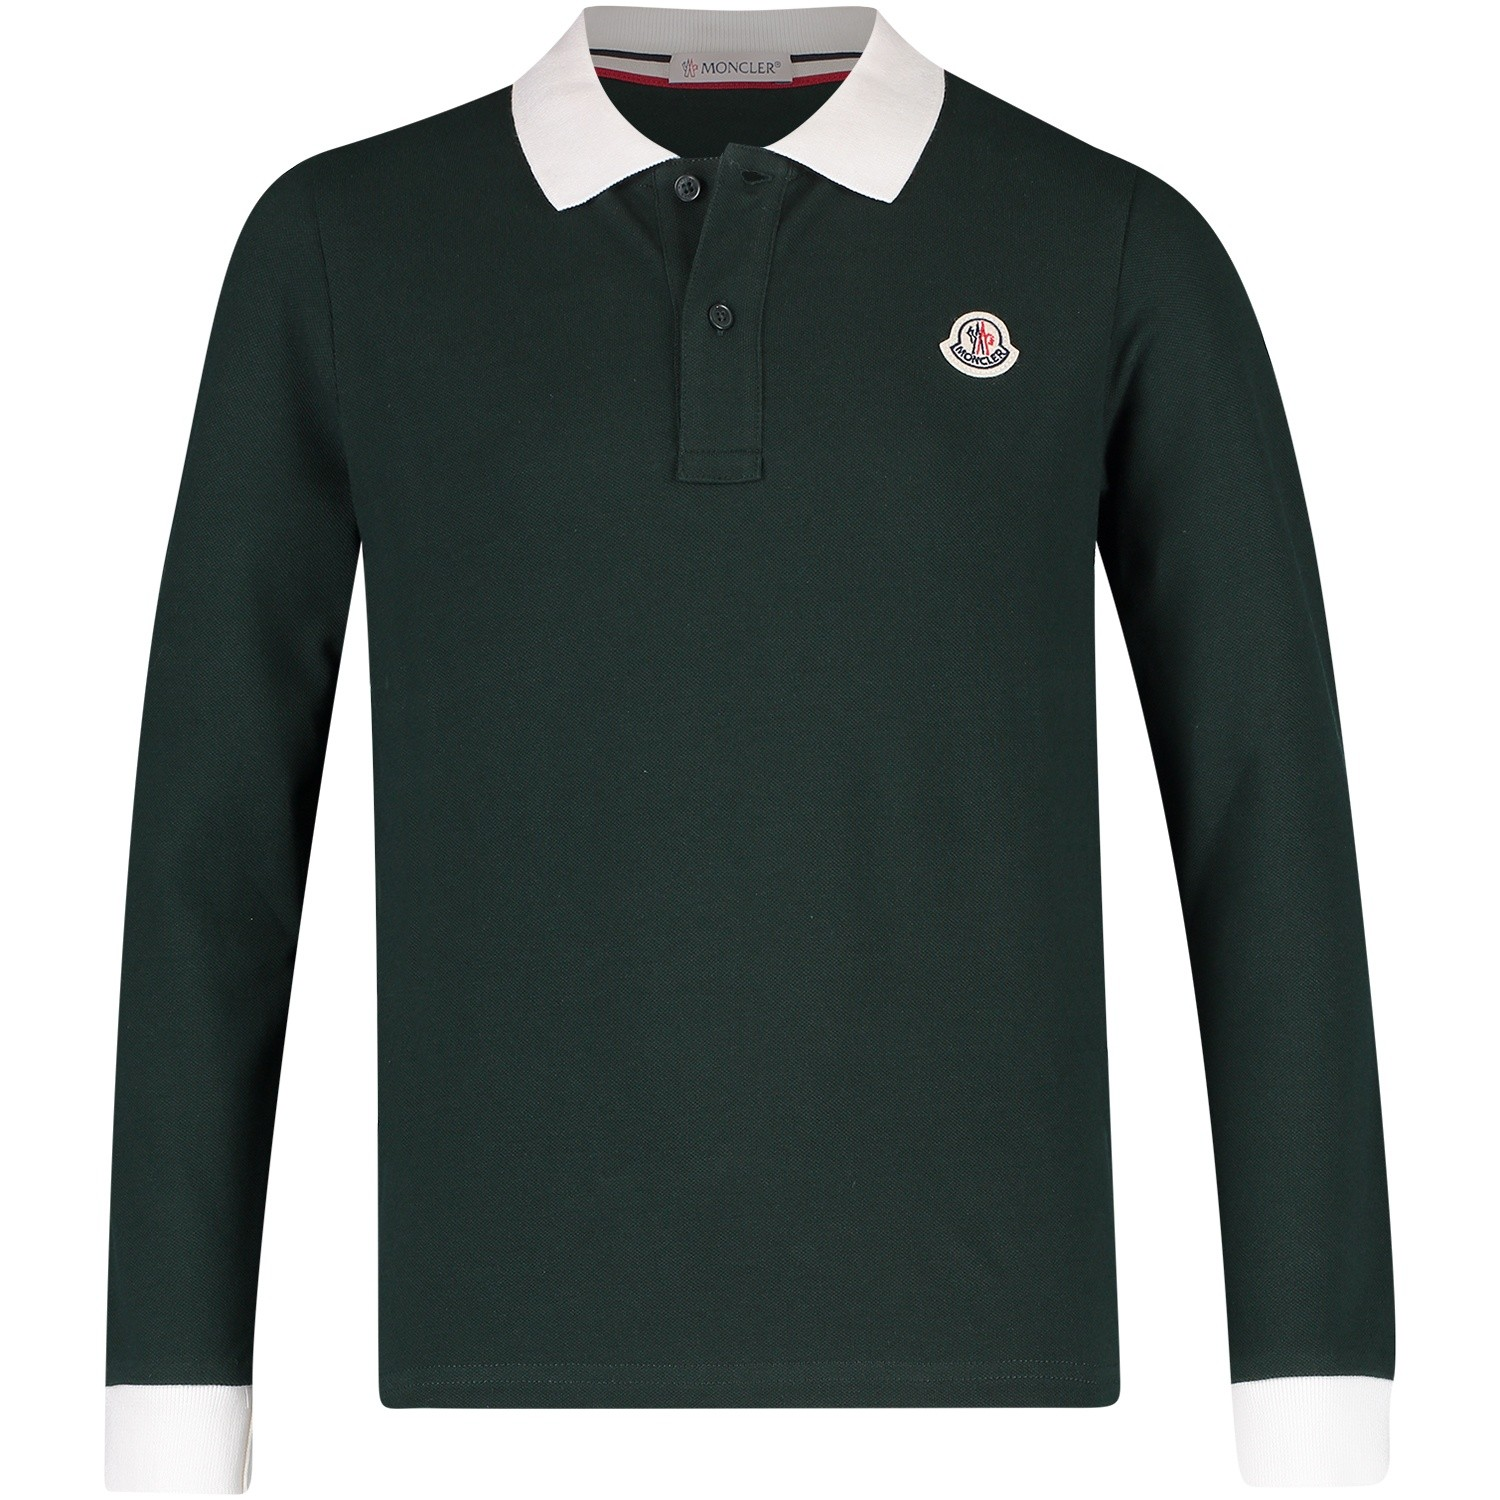 Picture of Moncler 8307750 kids polo shirt dark green